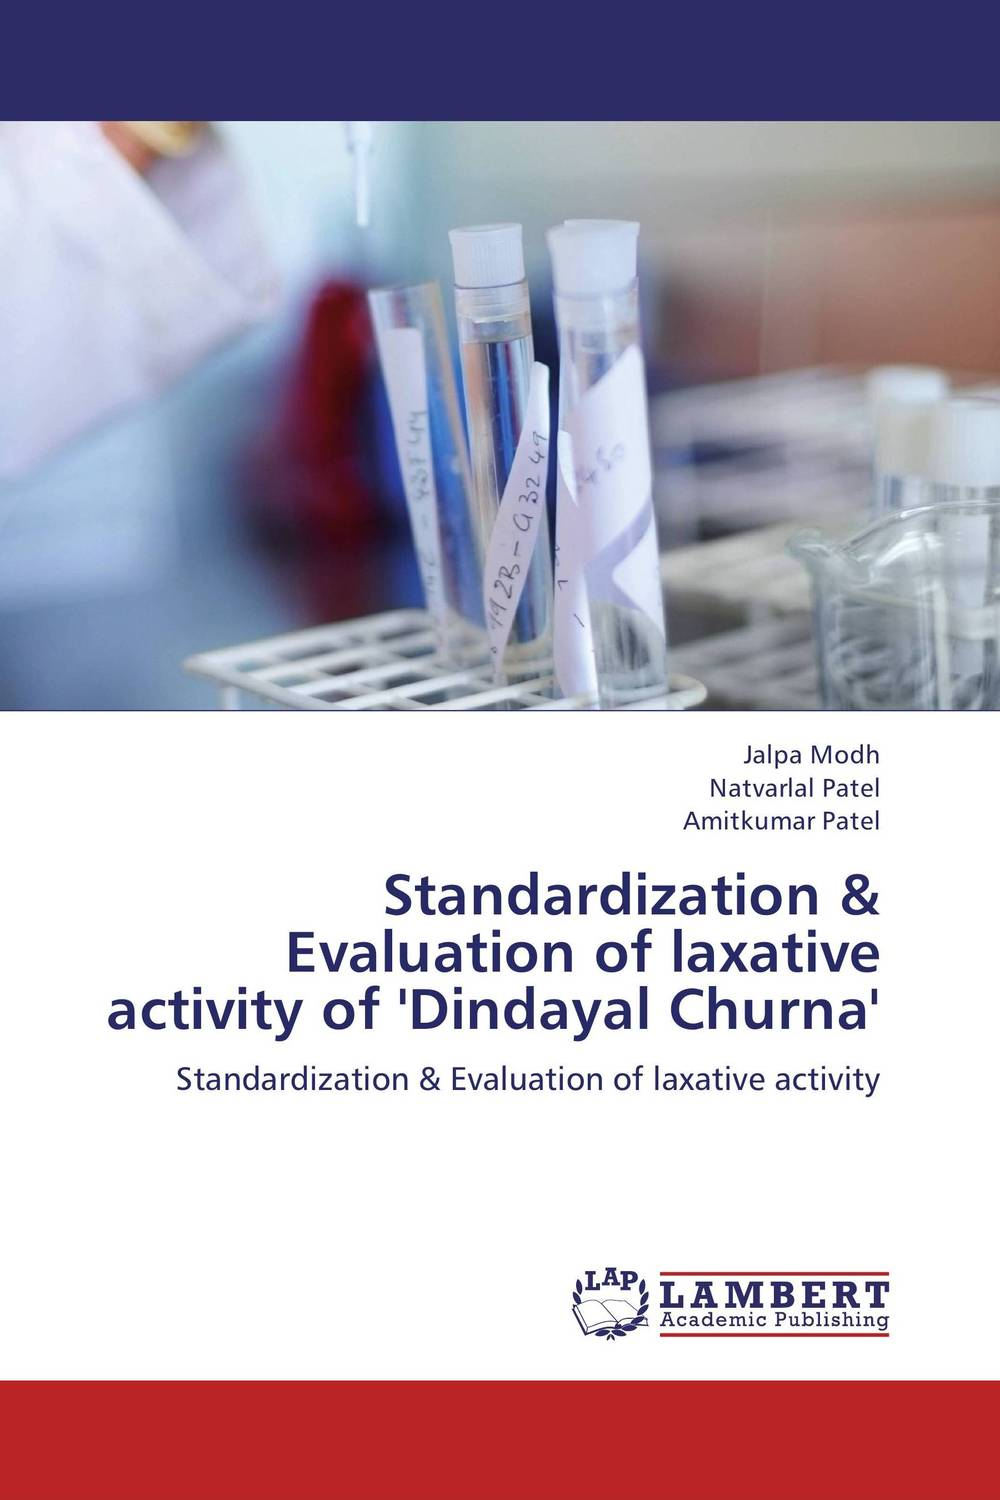 Standardization & Evaluation of laxative activity of 'Dindayal Churna' гилоя гудучи чурна giloya churna vyas 100 г